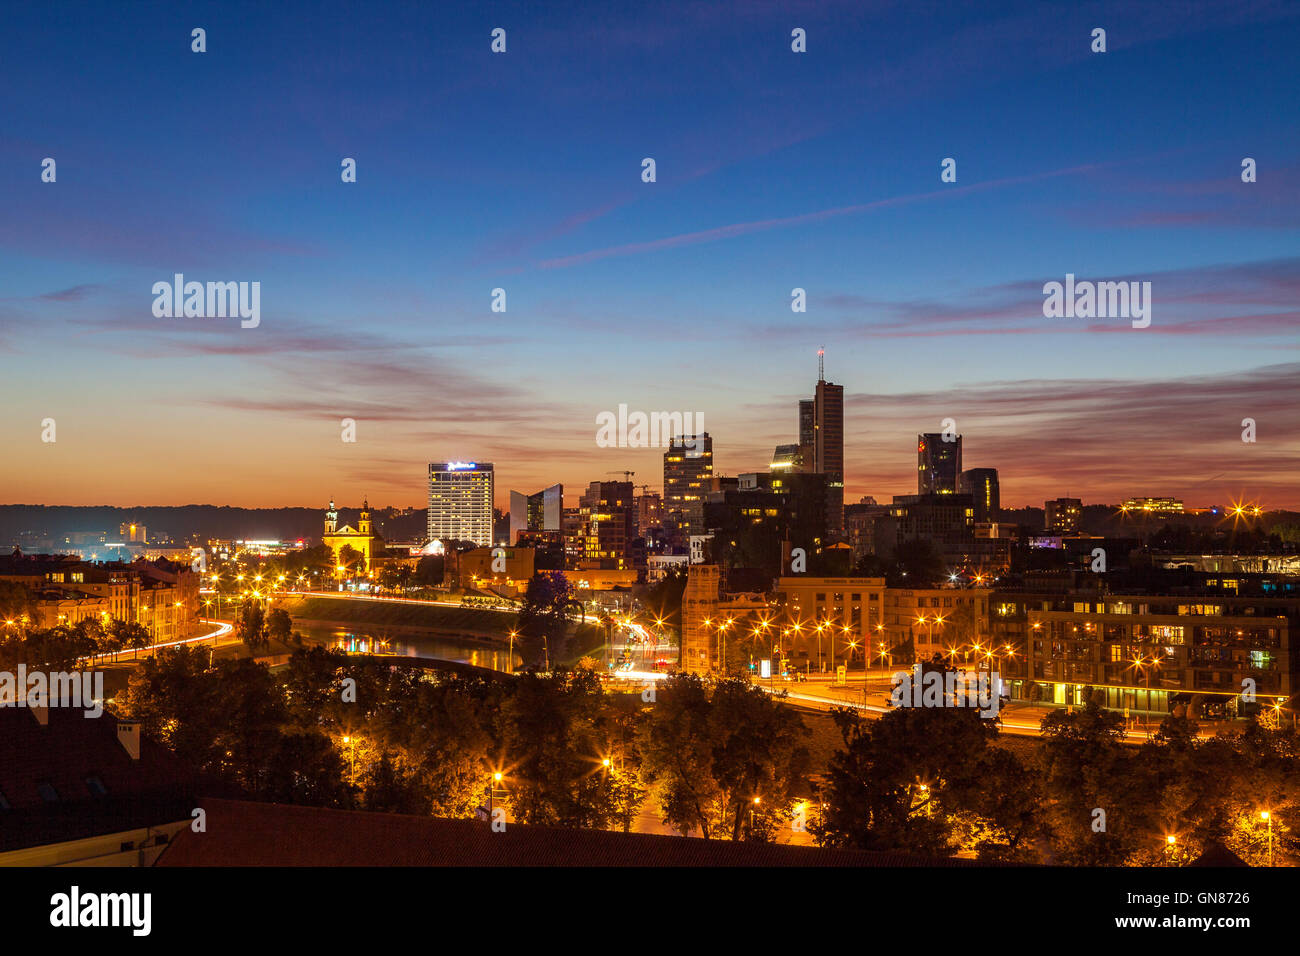 Lithuania Vilnius Traffic Stock Photos & Lithuania Vilnius Traffic ...